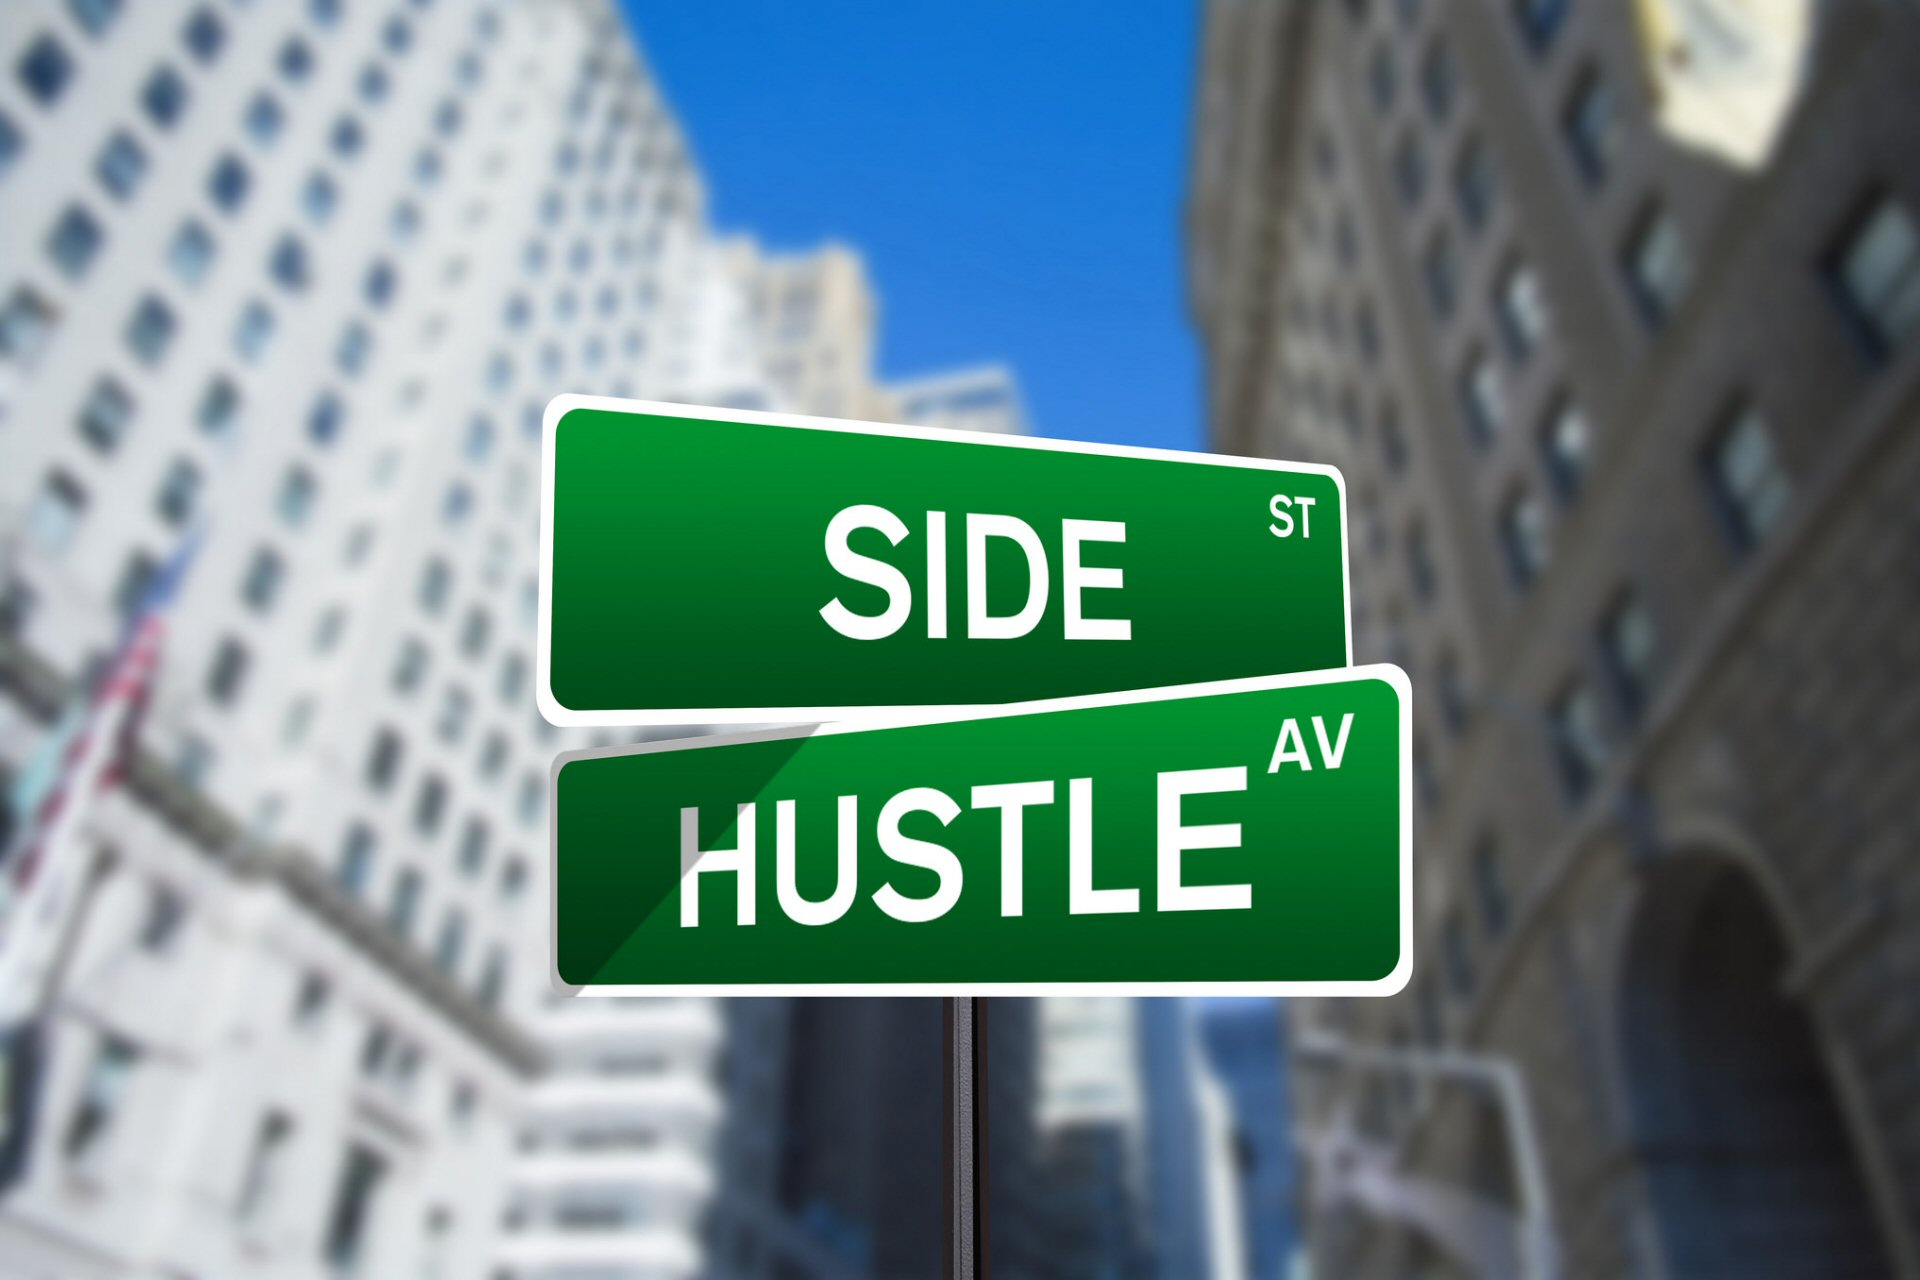 Are side hustle jobs really viable?